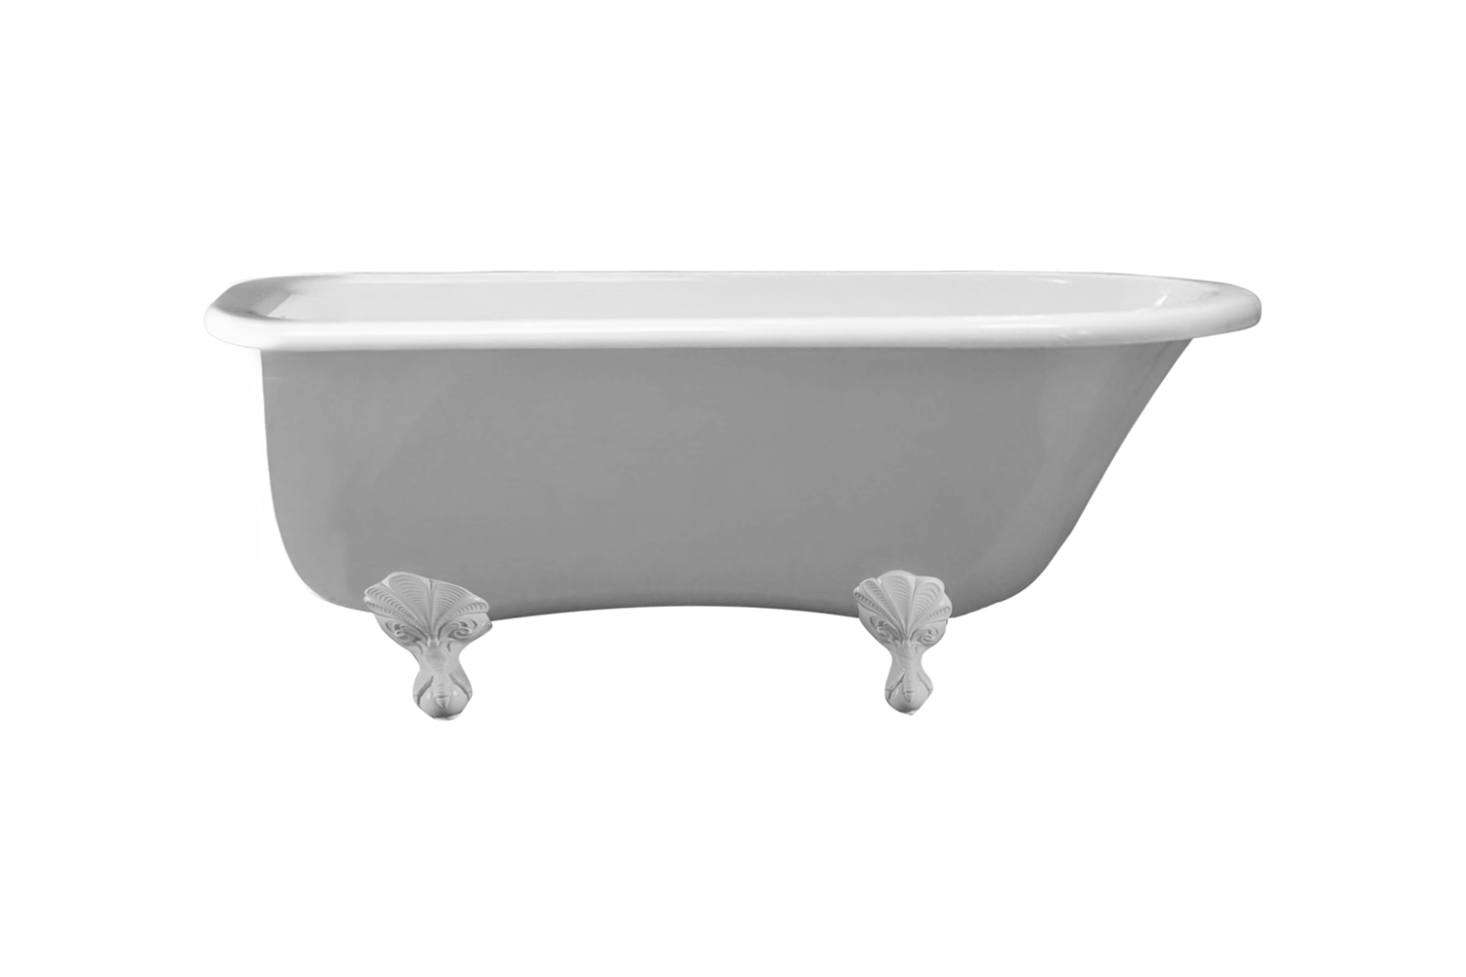 The Victoria & Albert Wessex Roll Rim with Optional Classic Ball and Claw Feet is $2,116.50 at Quality Bath.